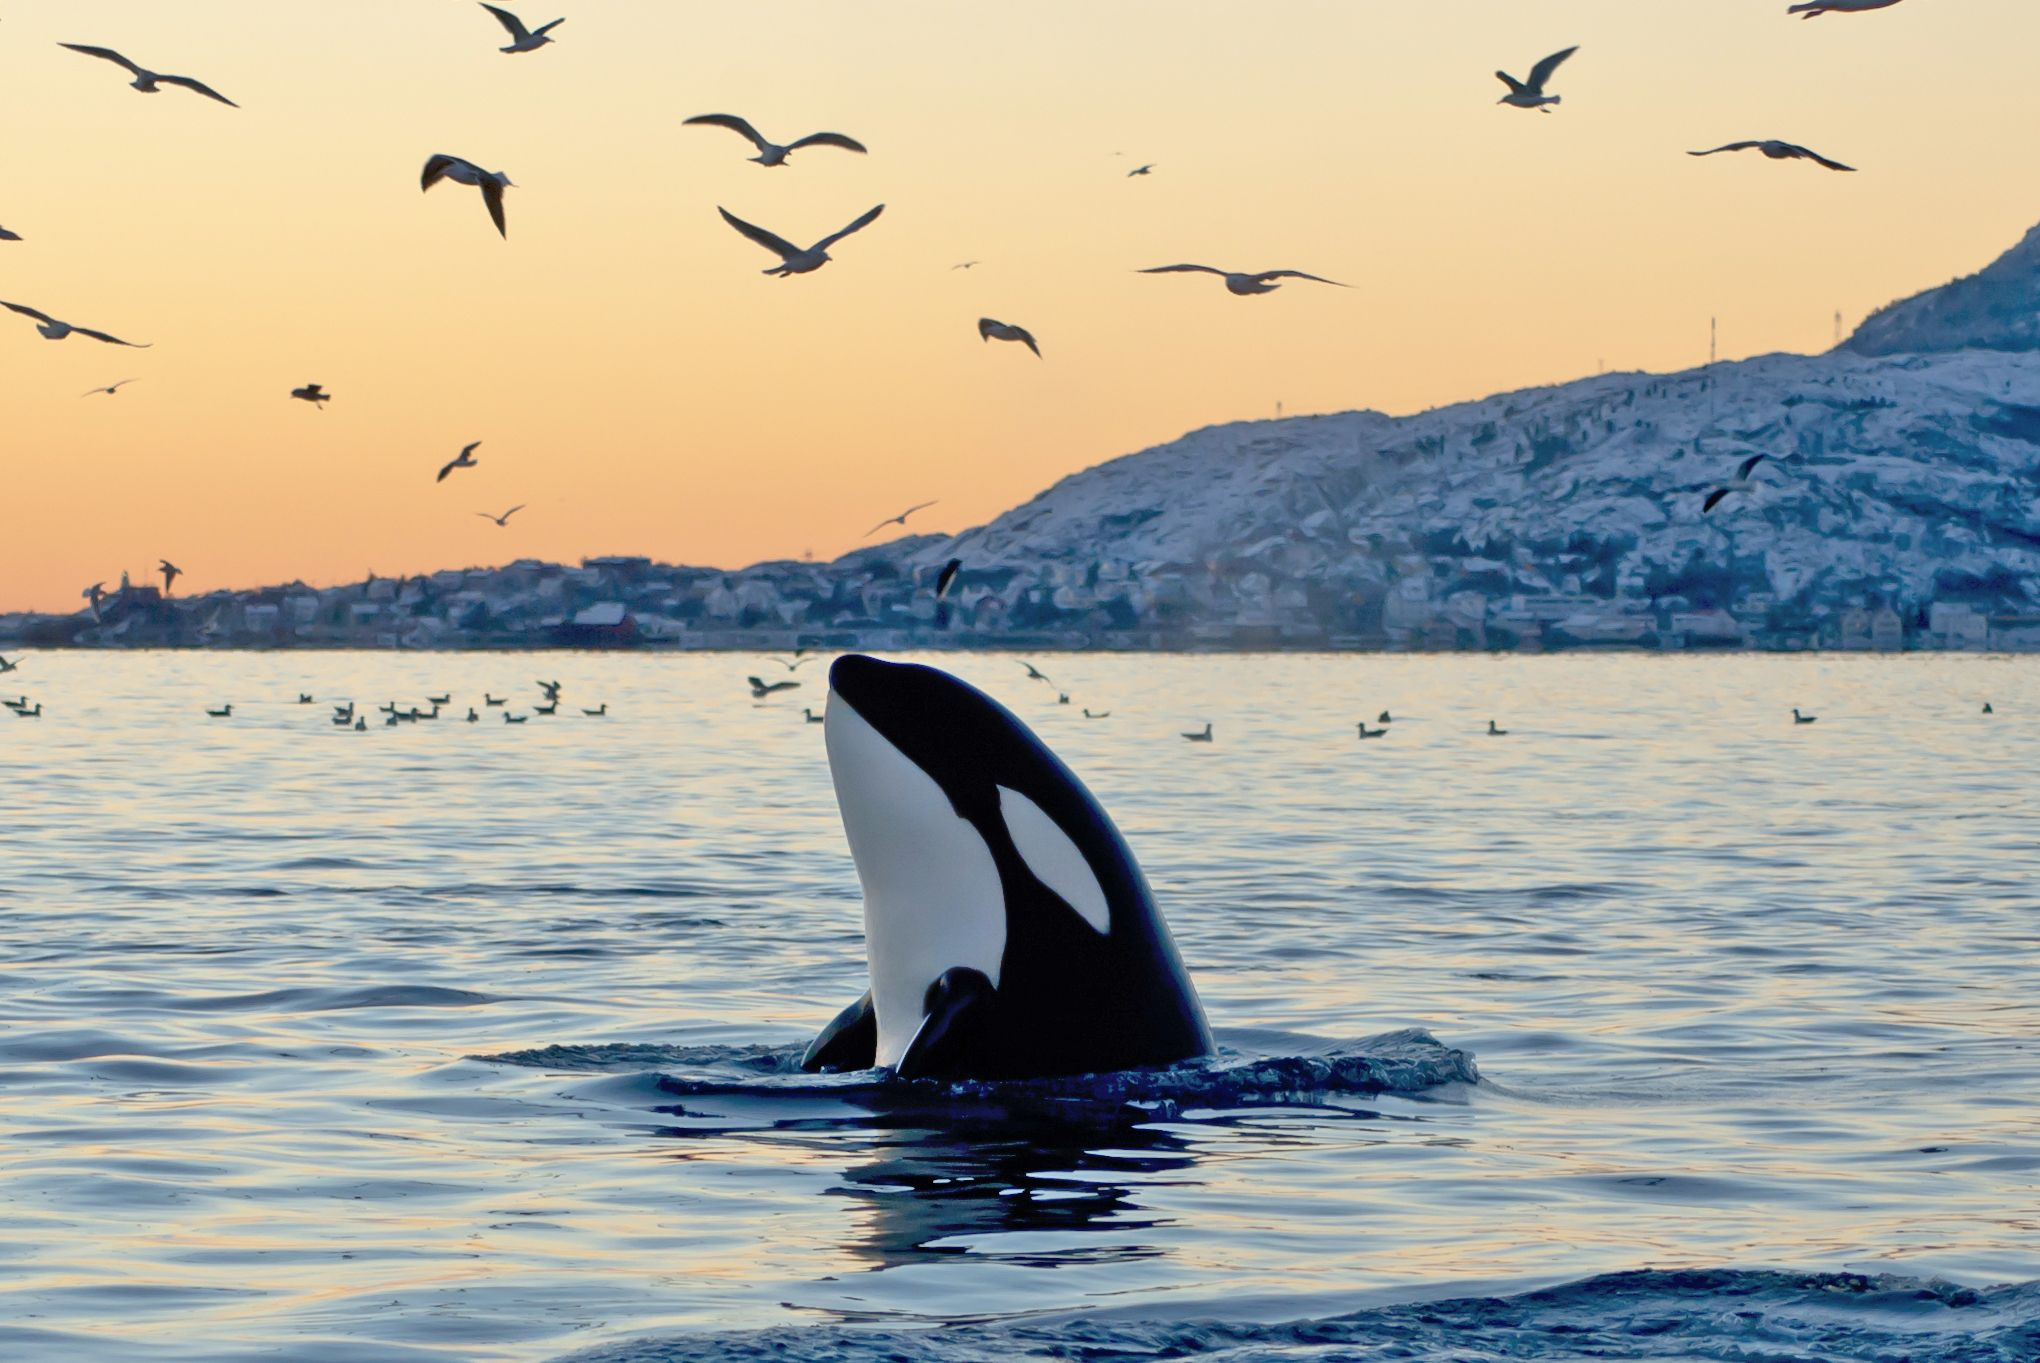 Killer whales are the largest type of dolphin.